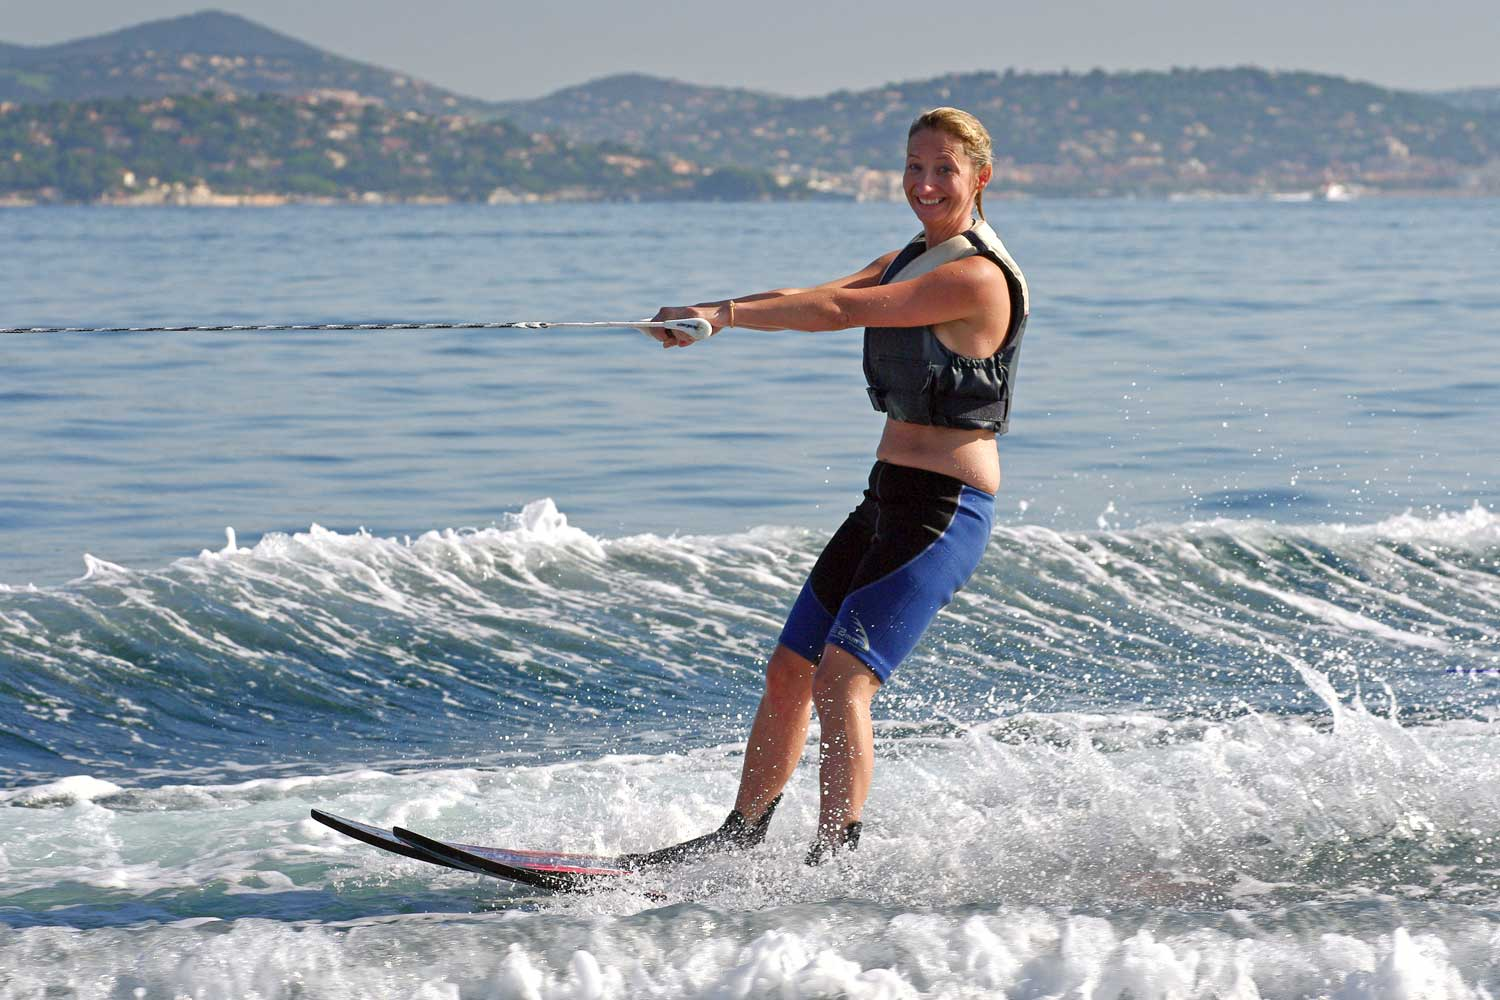 Adventure St Tropez Discount: 5% off Water Skiing